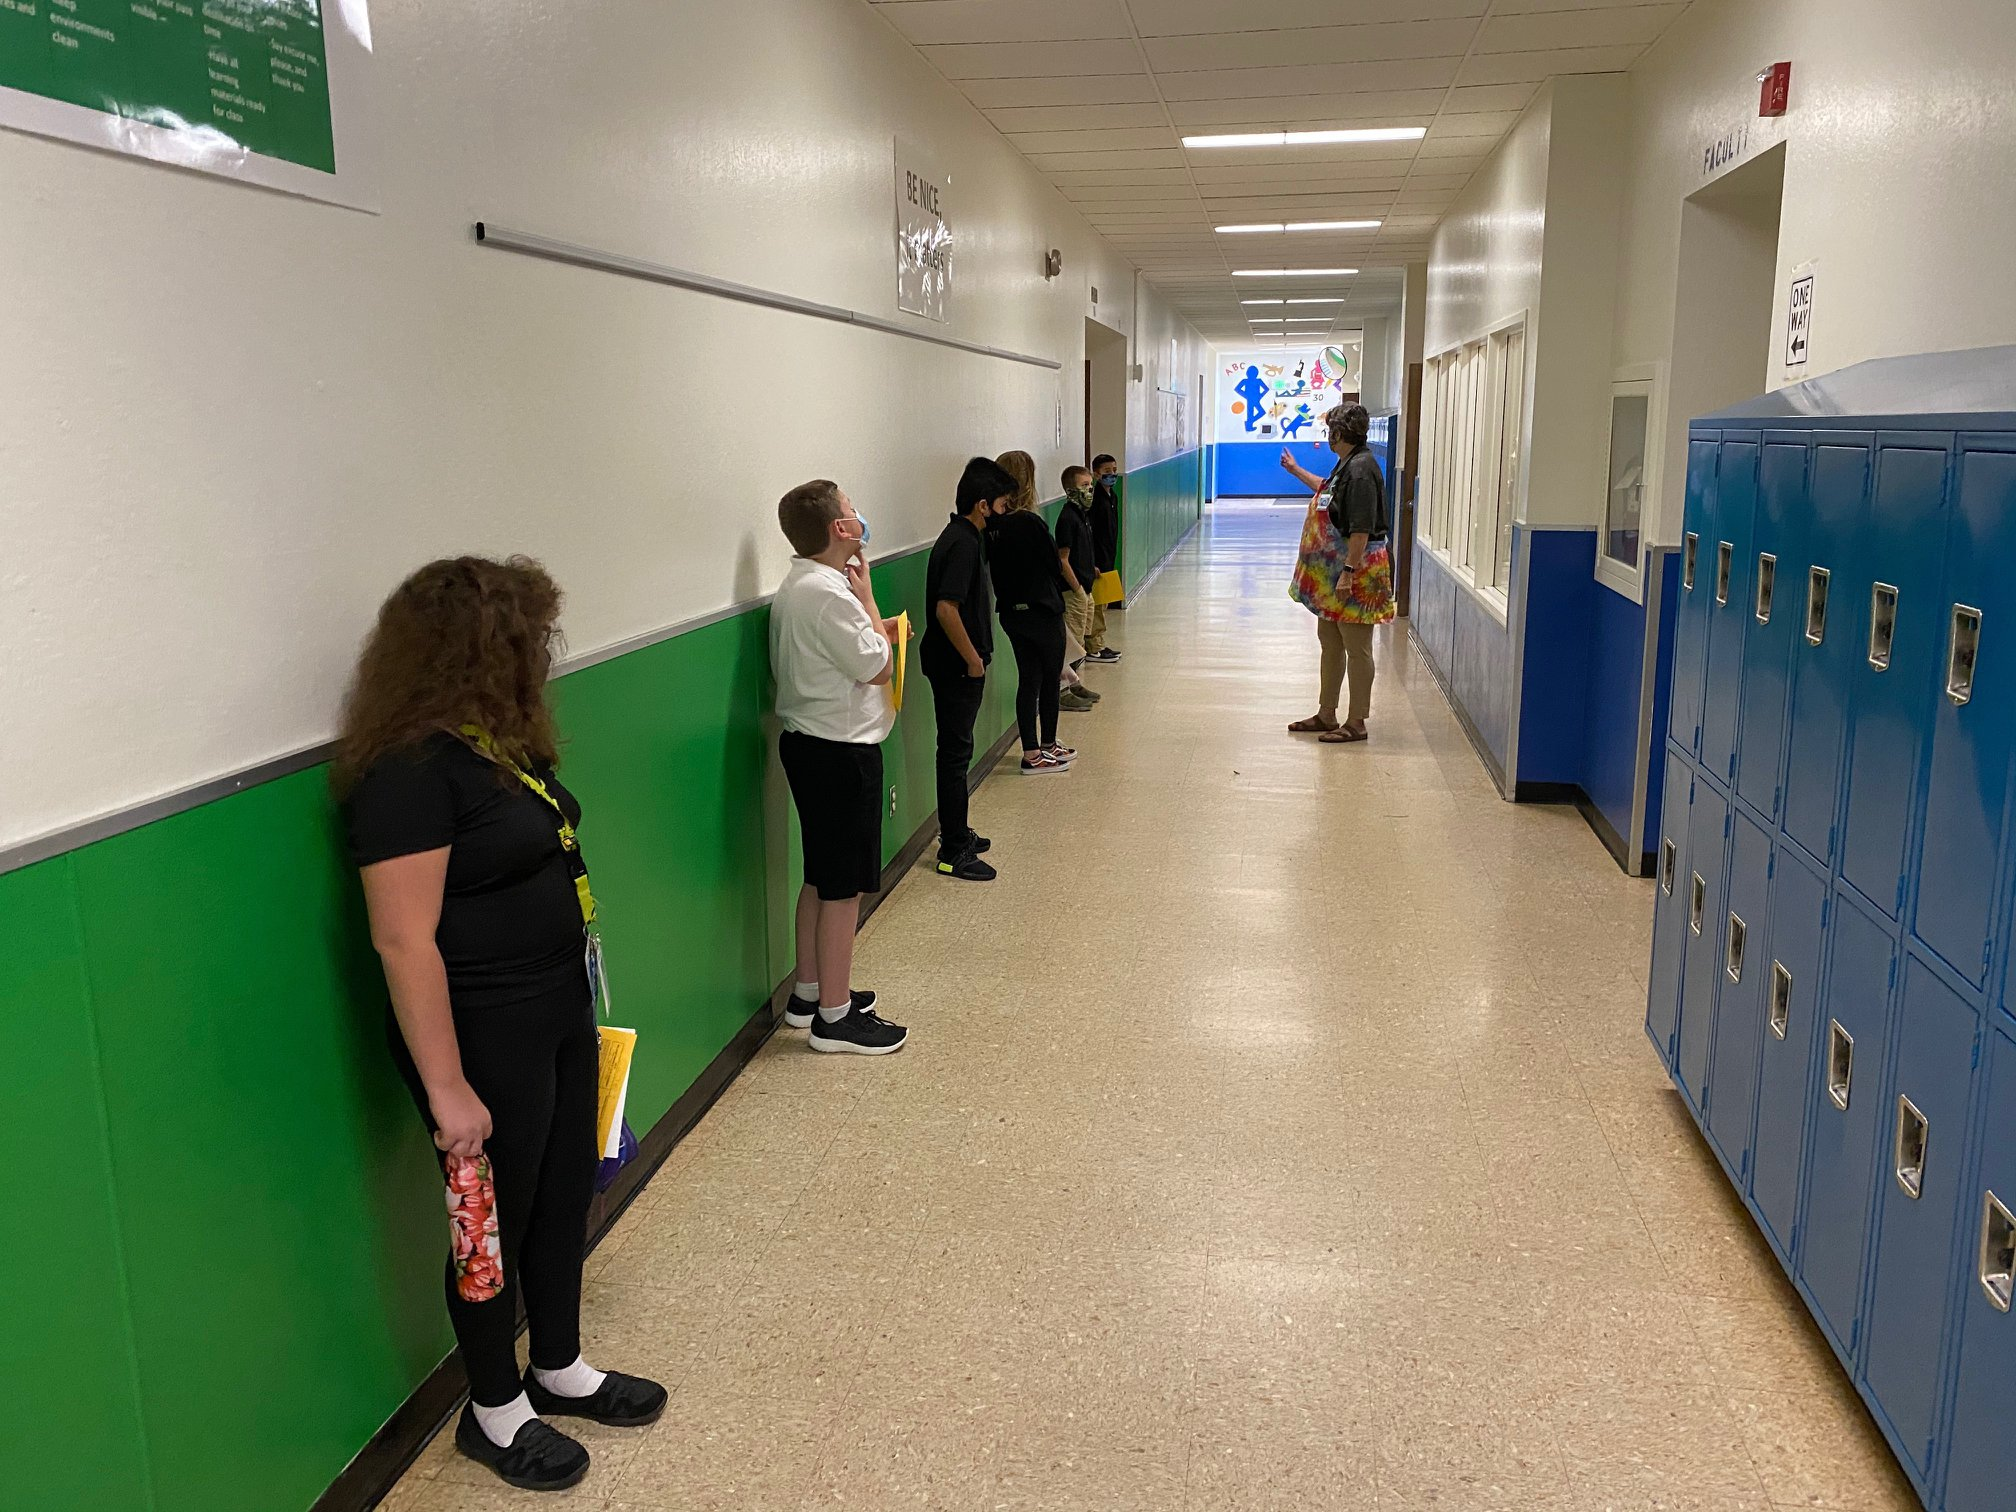 Students from a Washoe County elementary school waiting in school hallway to enter class.